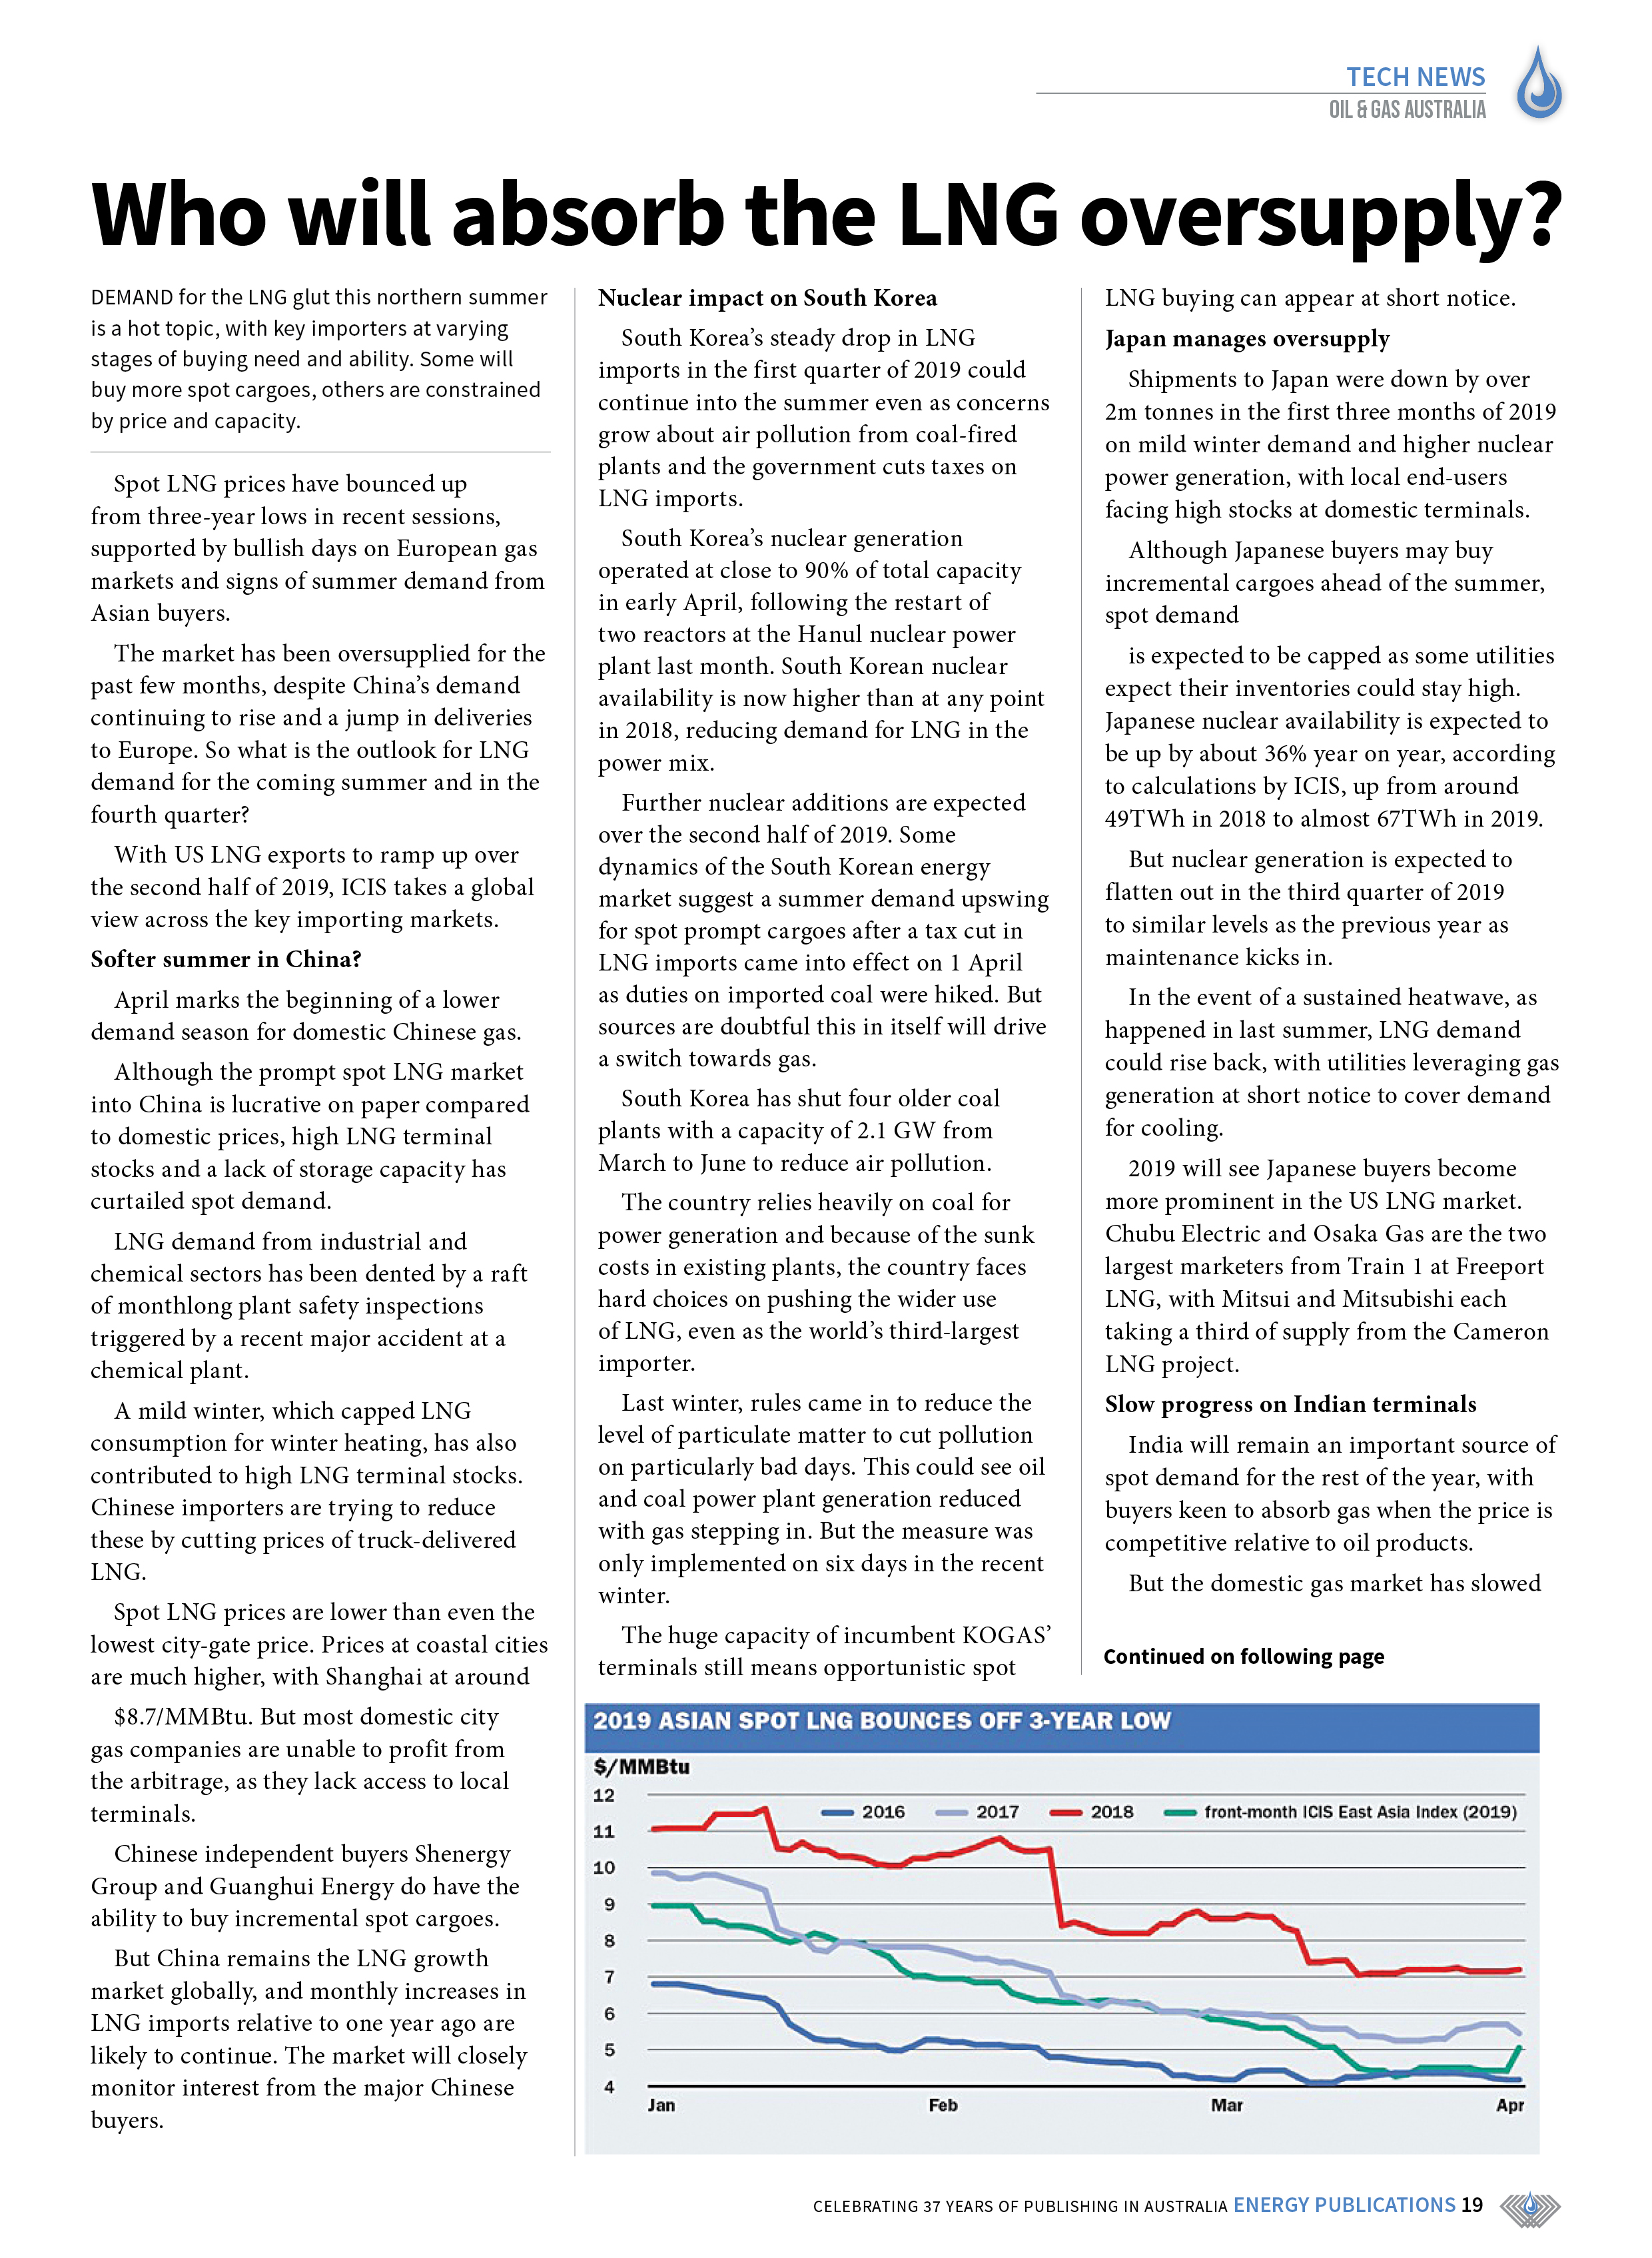 Oil & Gas Australia – May 2019 – Page 19